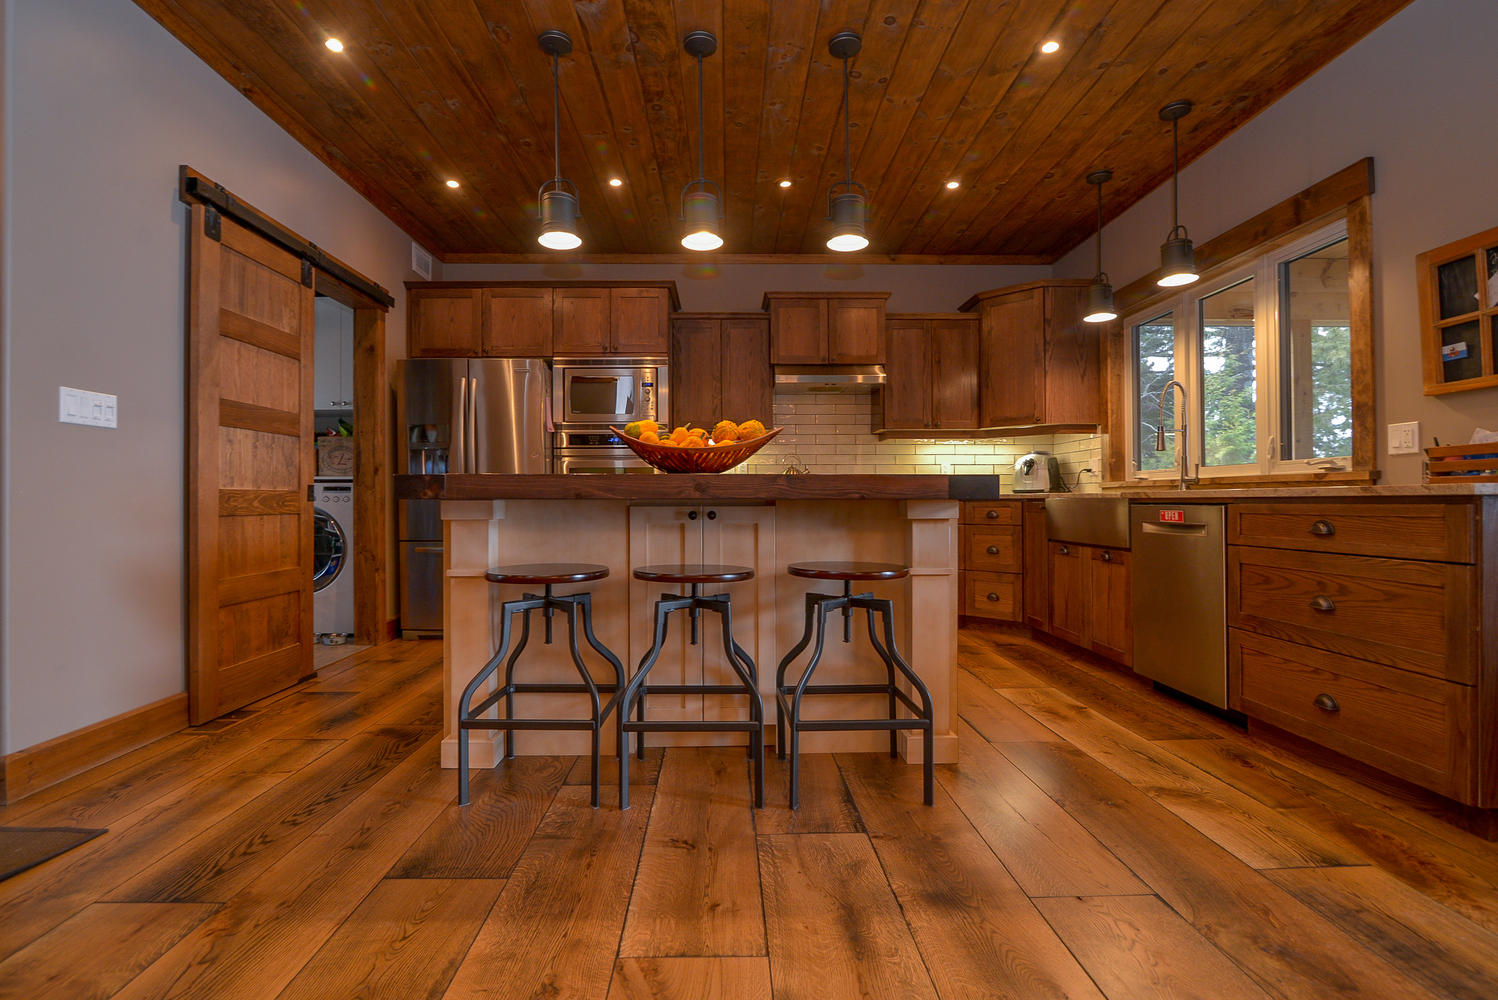 Pictures of Wide plank white oak flooring in rustic color